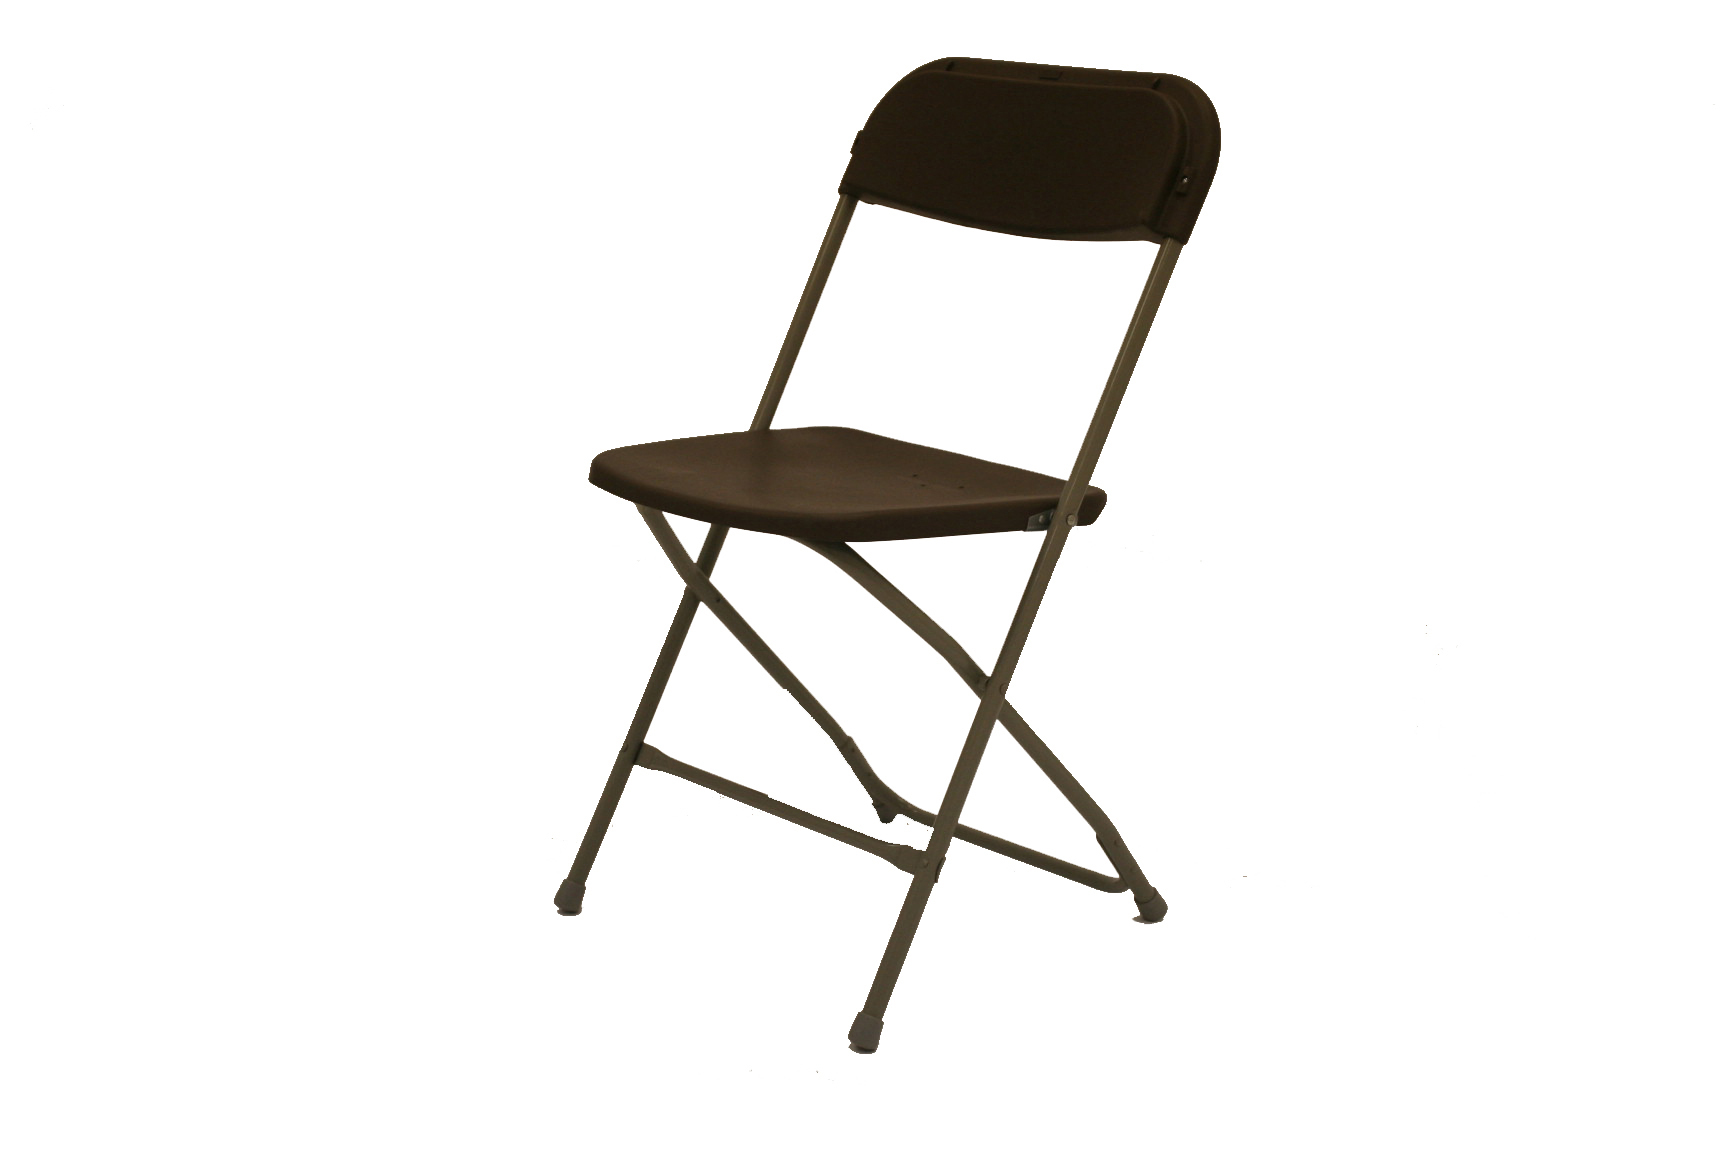 Lightweight Folding Samsonite Chair Hire - Events, Exhibitions - BE Event Hire